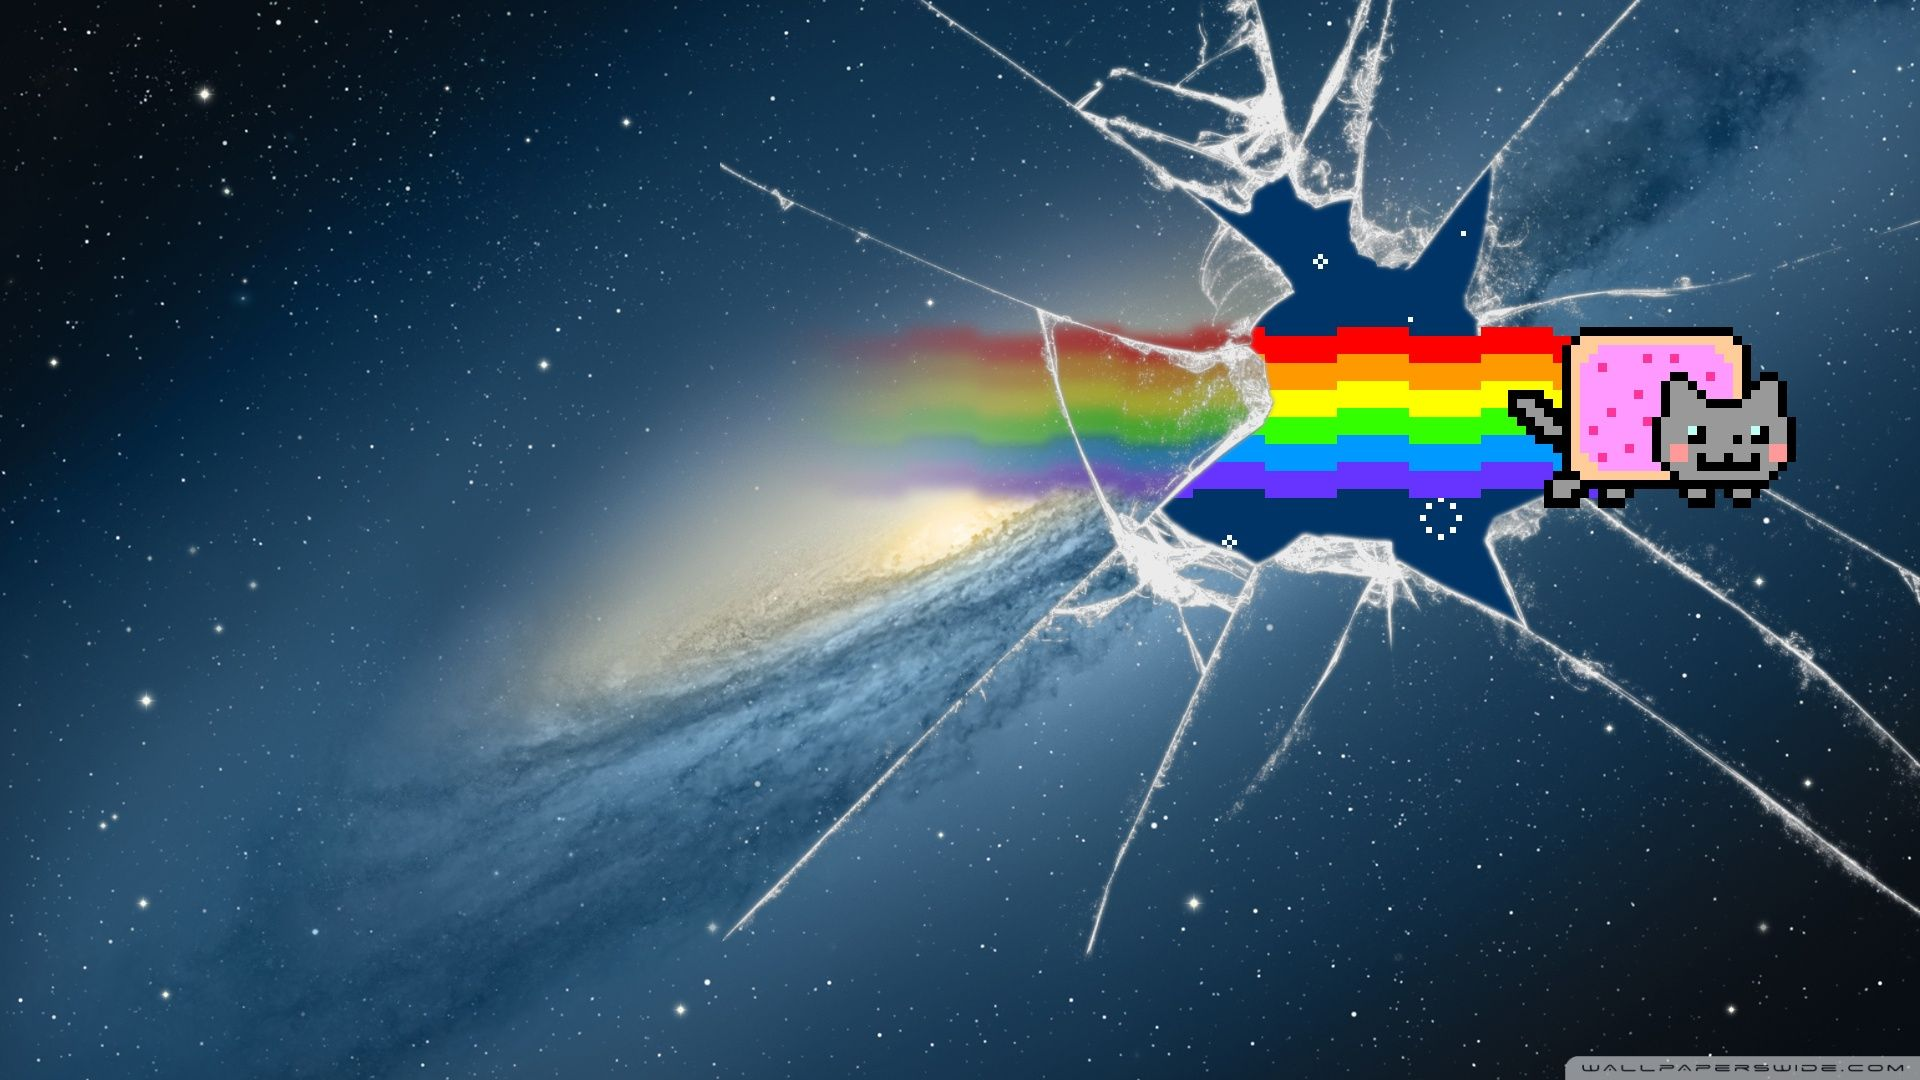 Pin By Mark On Anything And Everything Nyan Cat Cat Wallpaper Anime Wallpaper